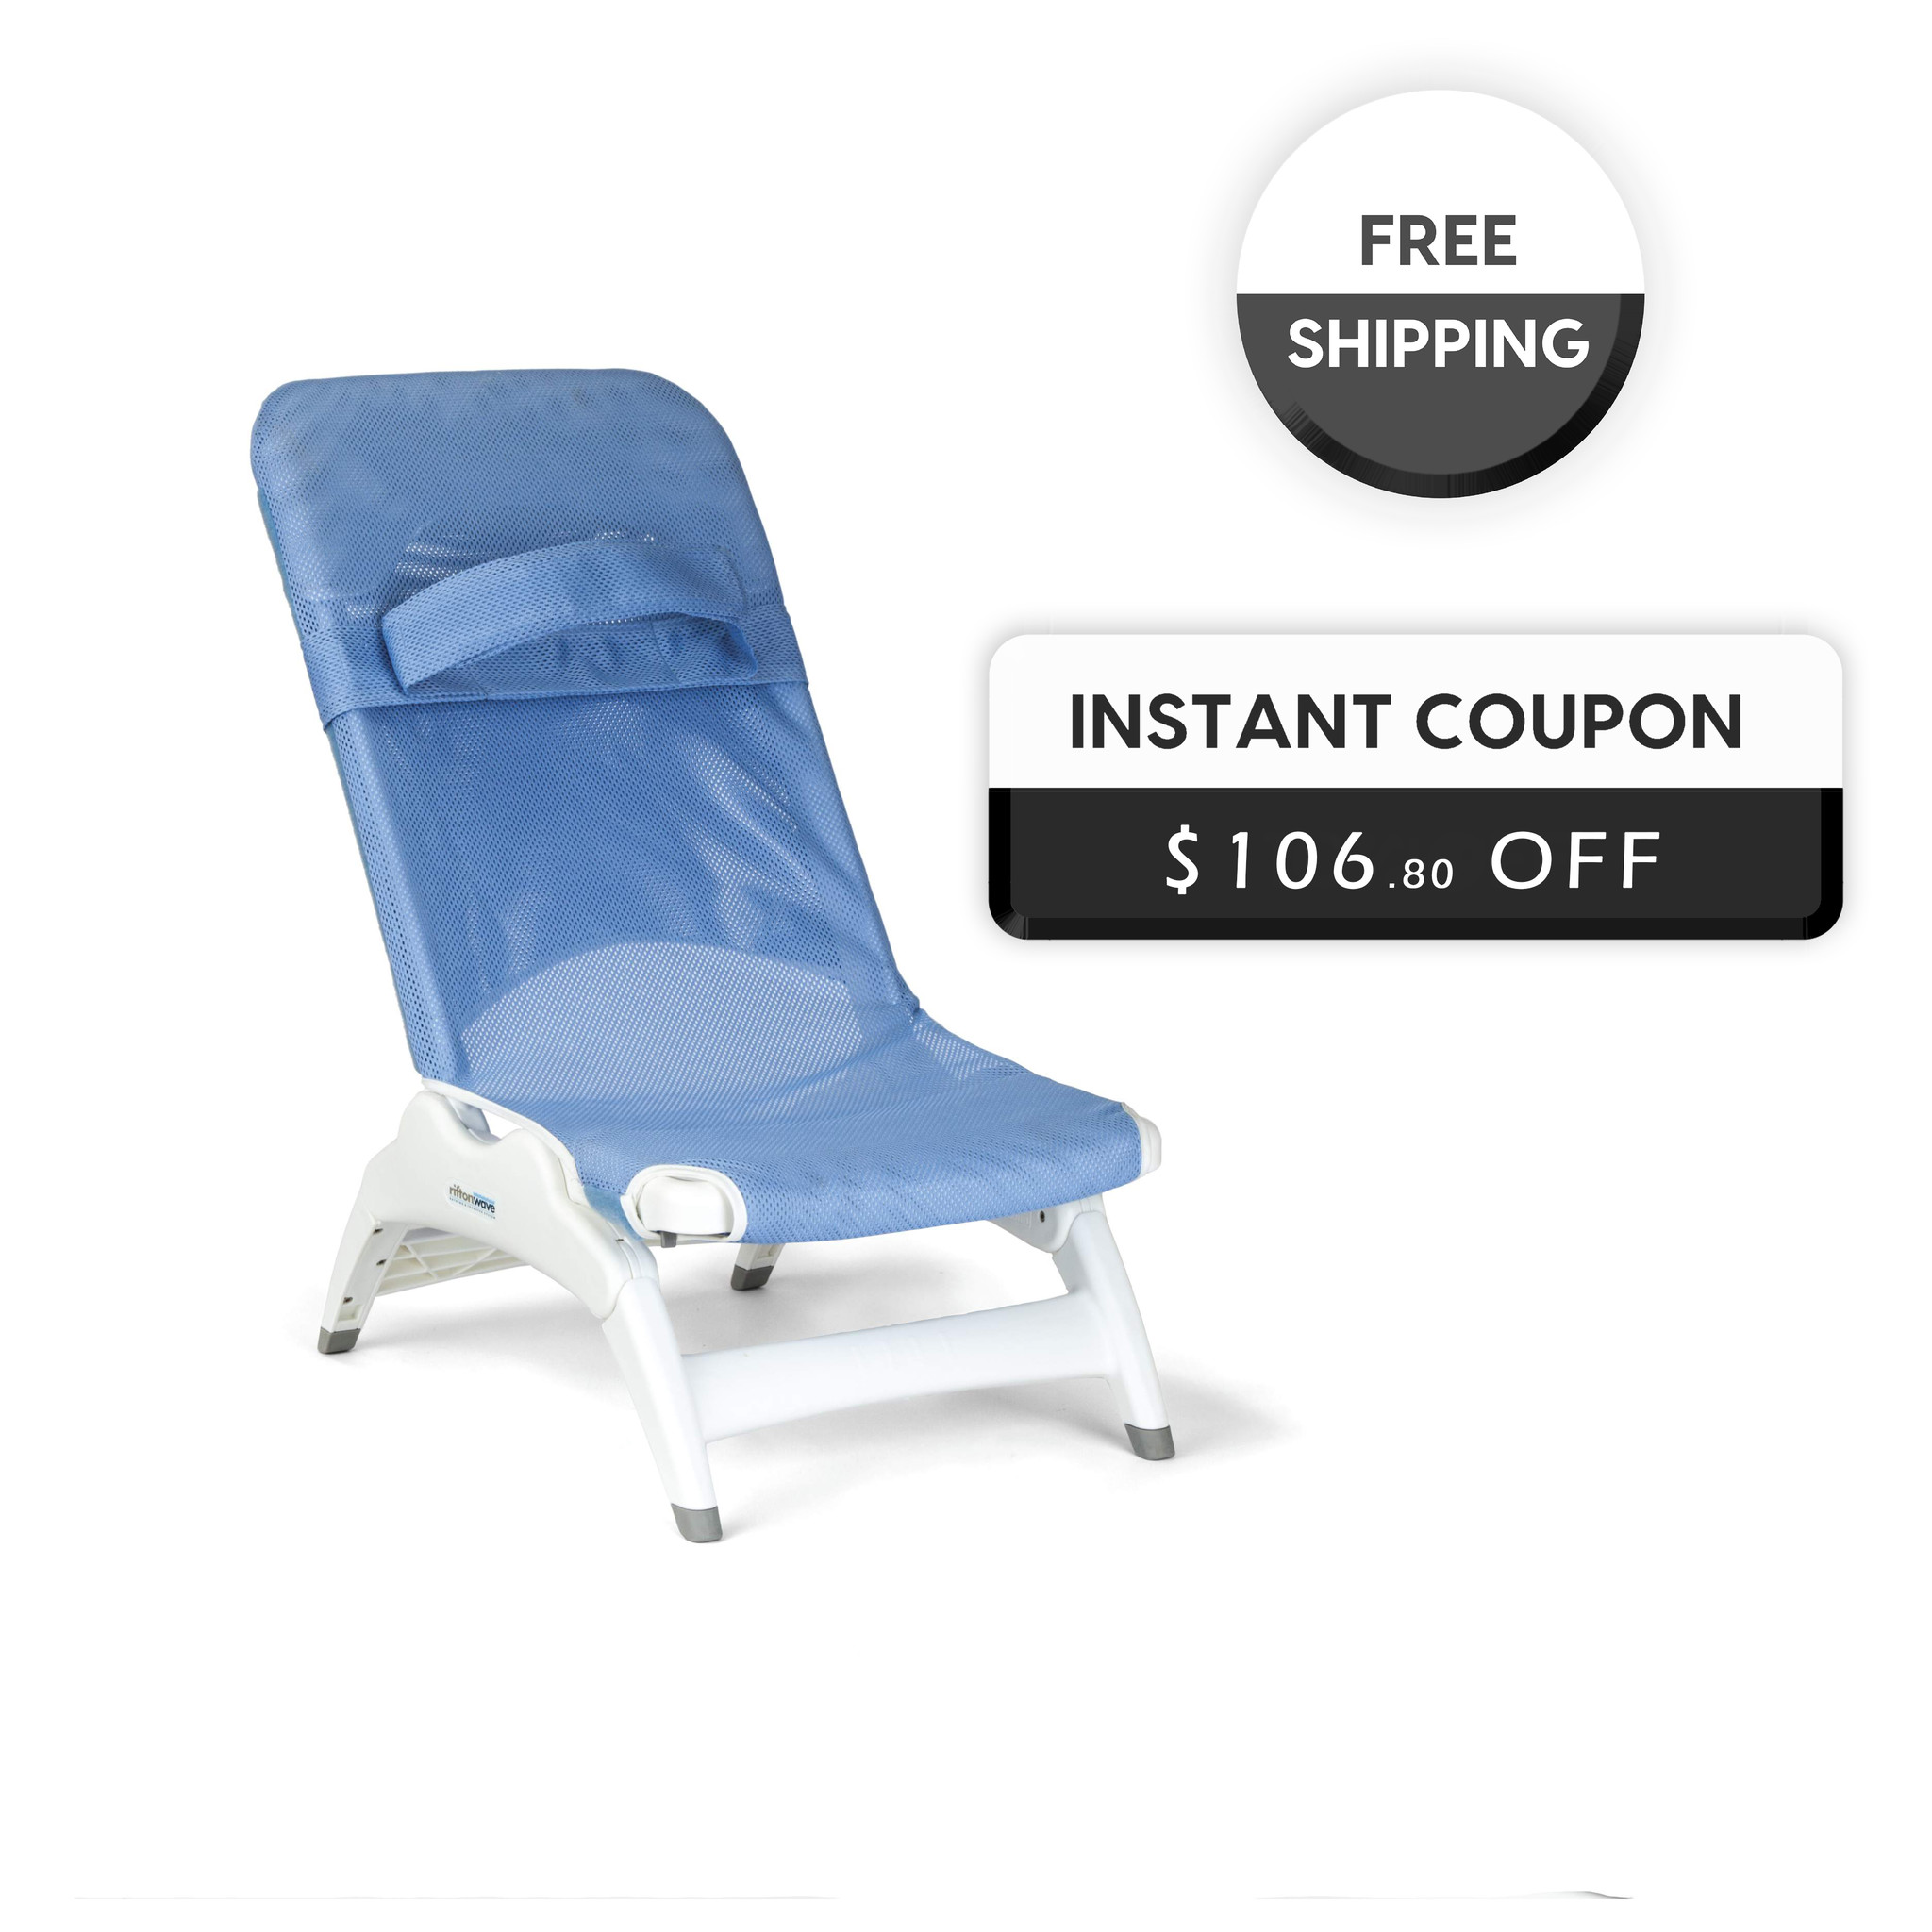 Rifton Wave Medium Bath Chair with Discount & Free Shipping